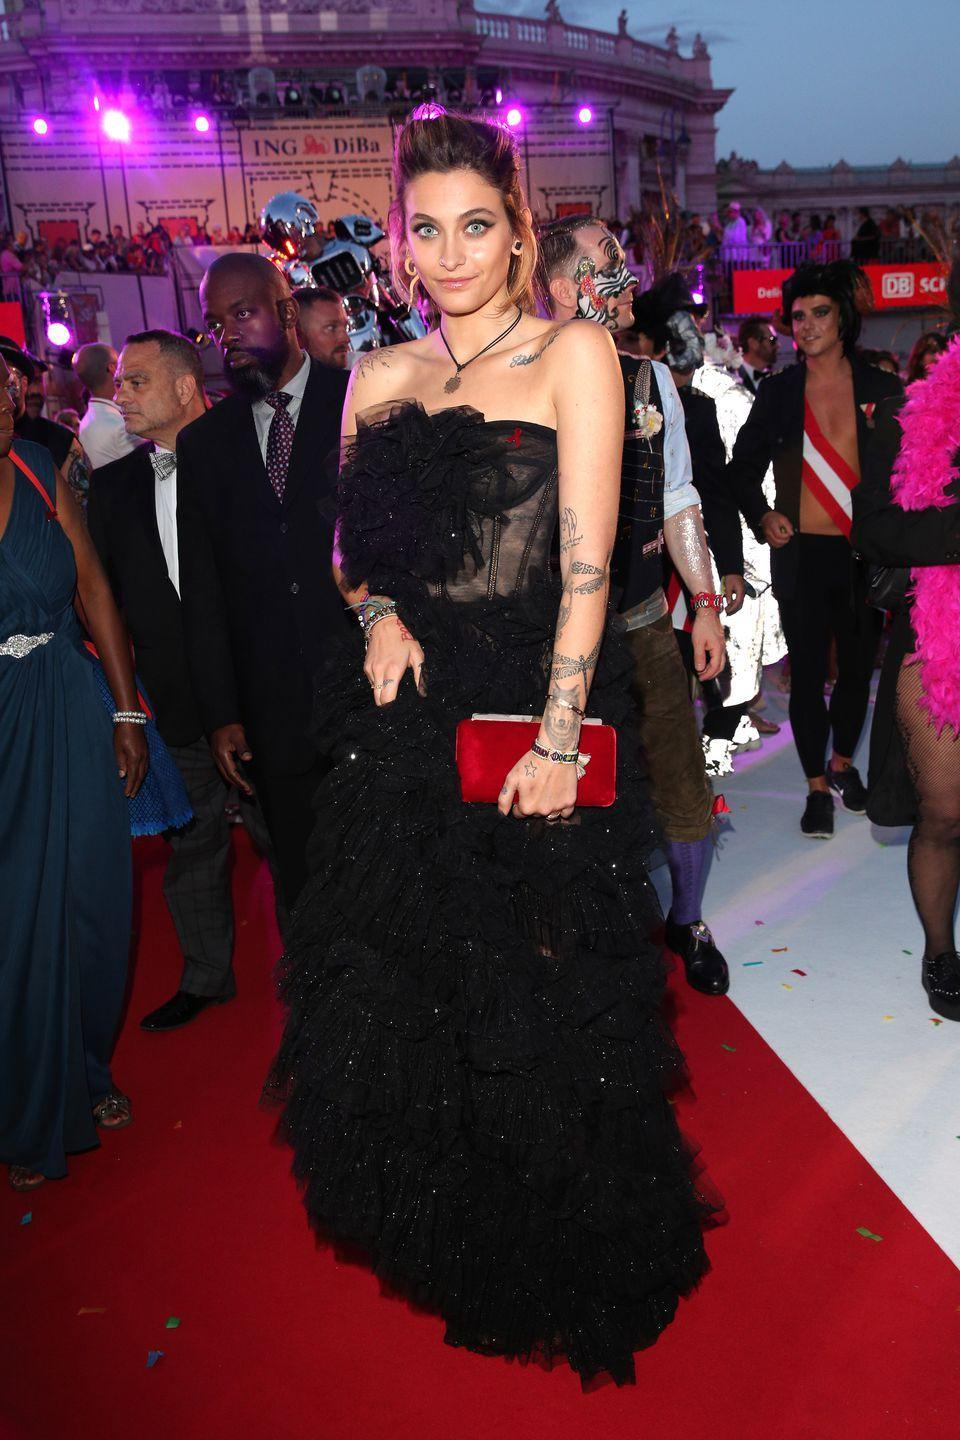 <p>The actress wore Dolce & Gabbana to The Life Ball in Vienna.</p>